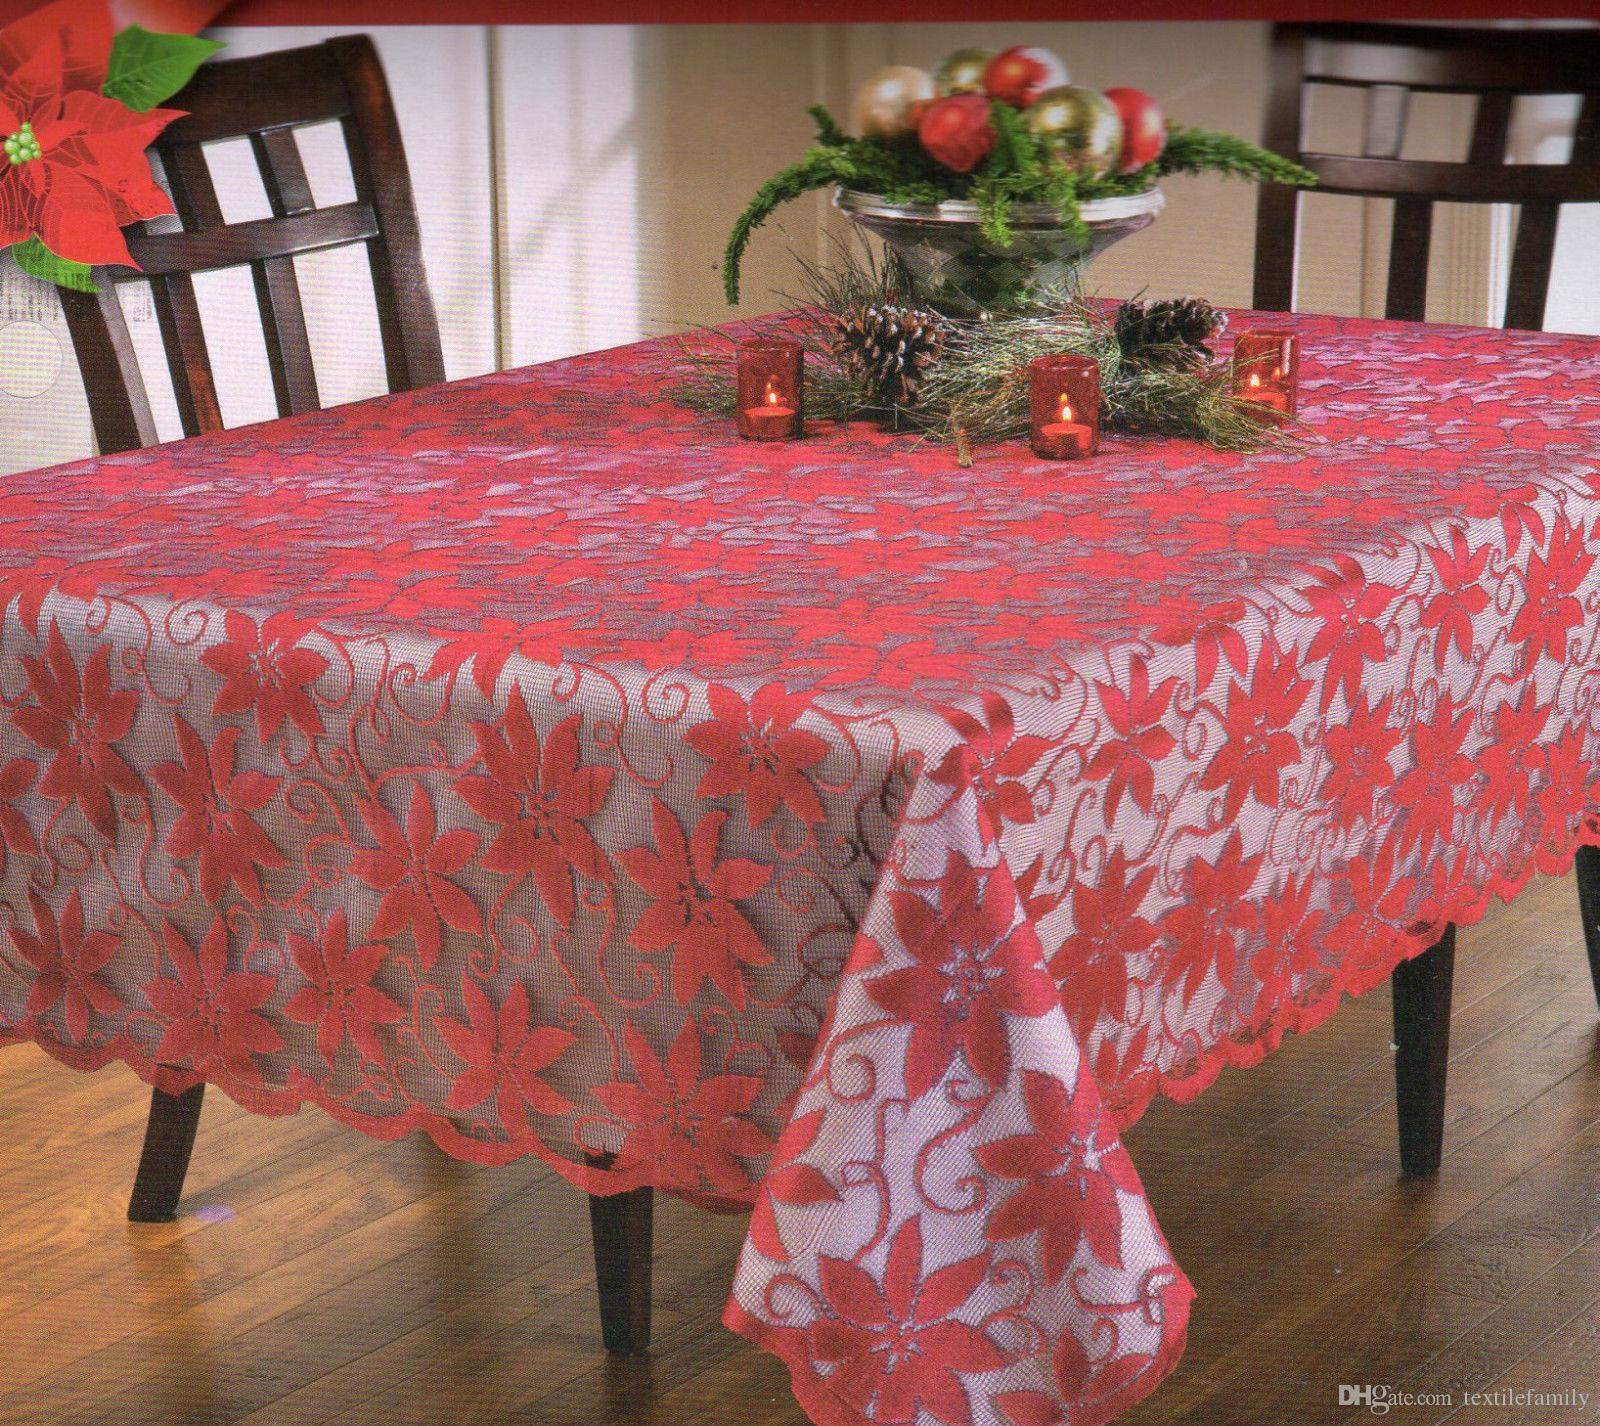 Christmas Tablecloths Australia Christmas Festival Polyester Red Lace Tablecloths Poinsettia Flower Lace Knitted Tablecloths Fashion Hot Design New Free Shipping